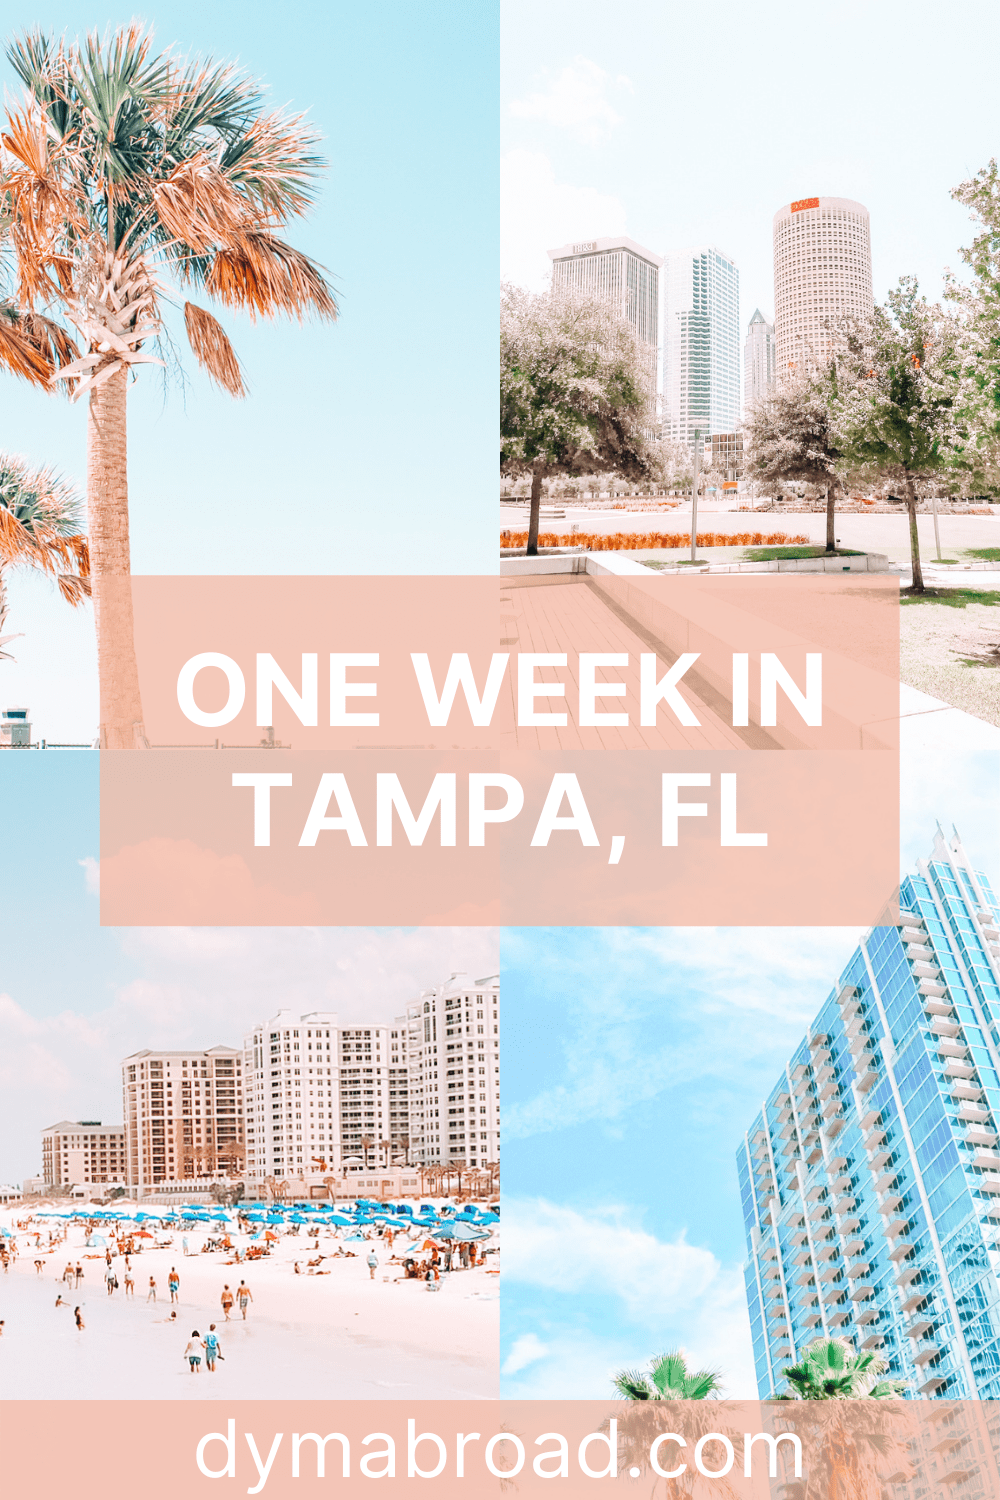 One week in Tampa second Pinterest image